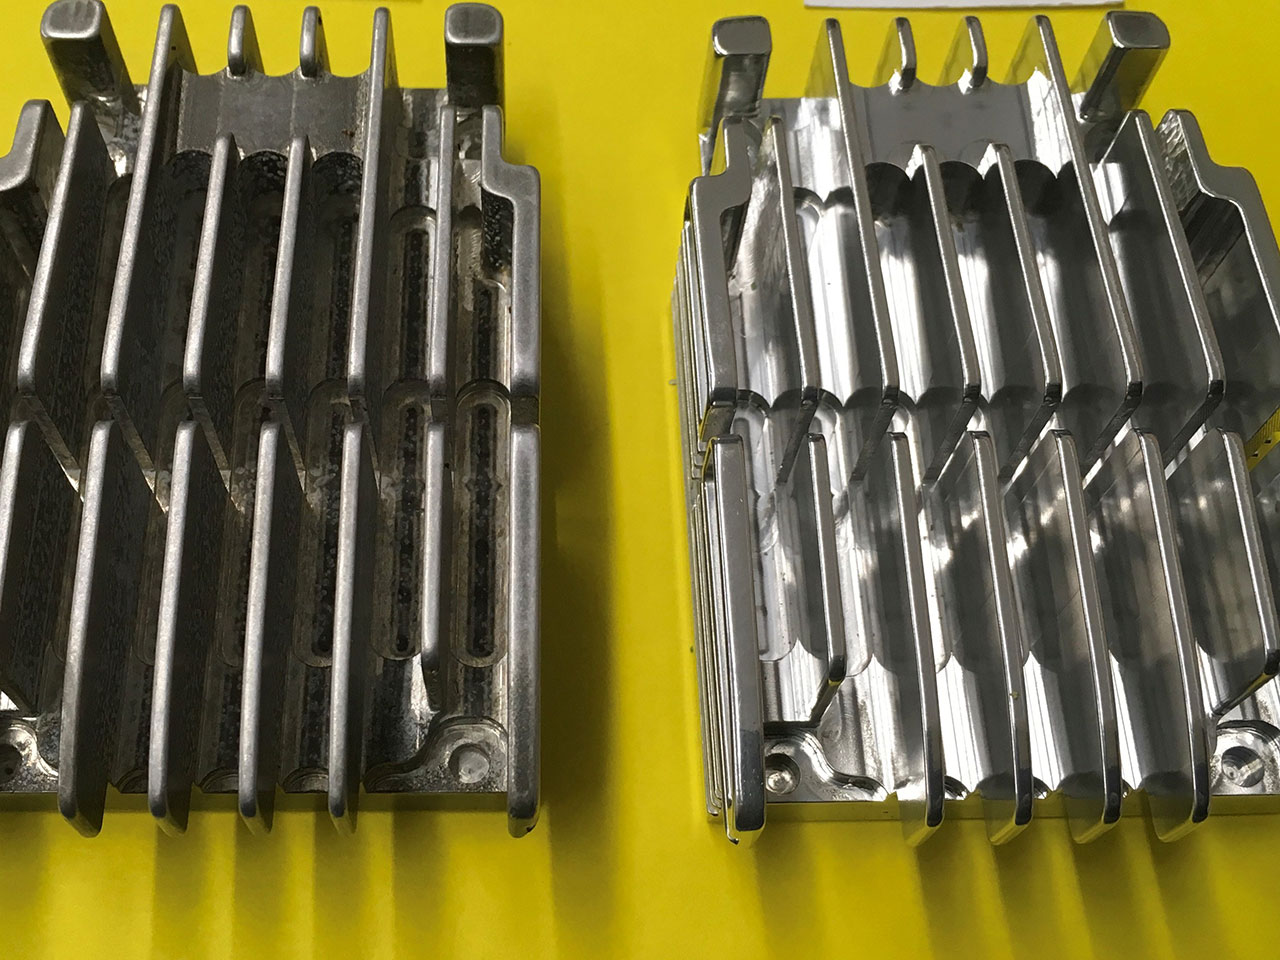 Deburring and Polishing Aluminum Heat Sinks